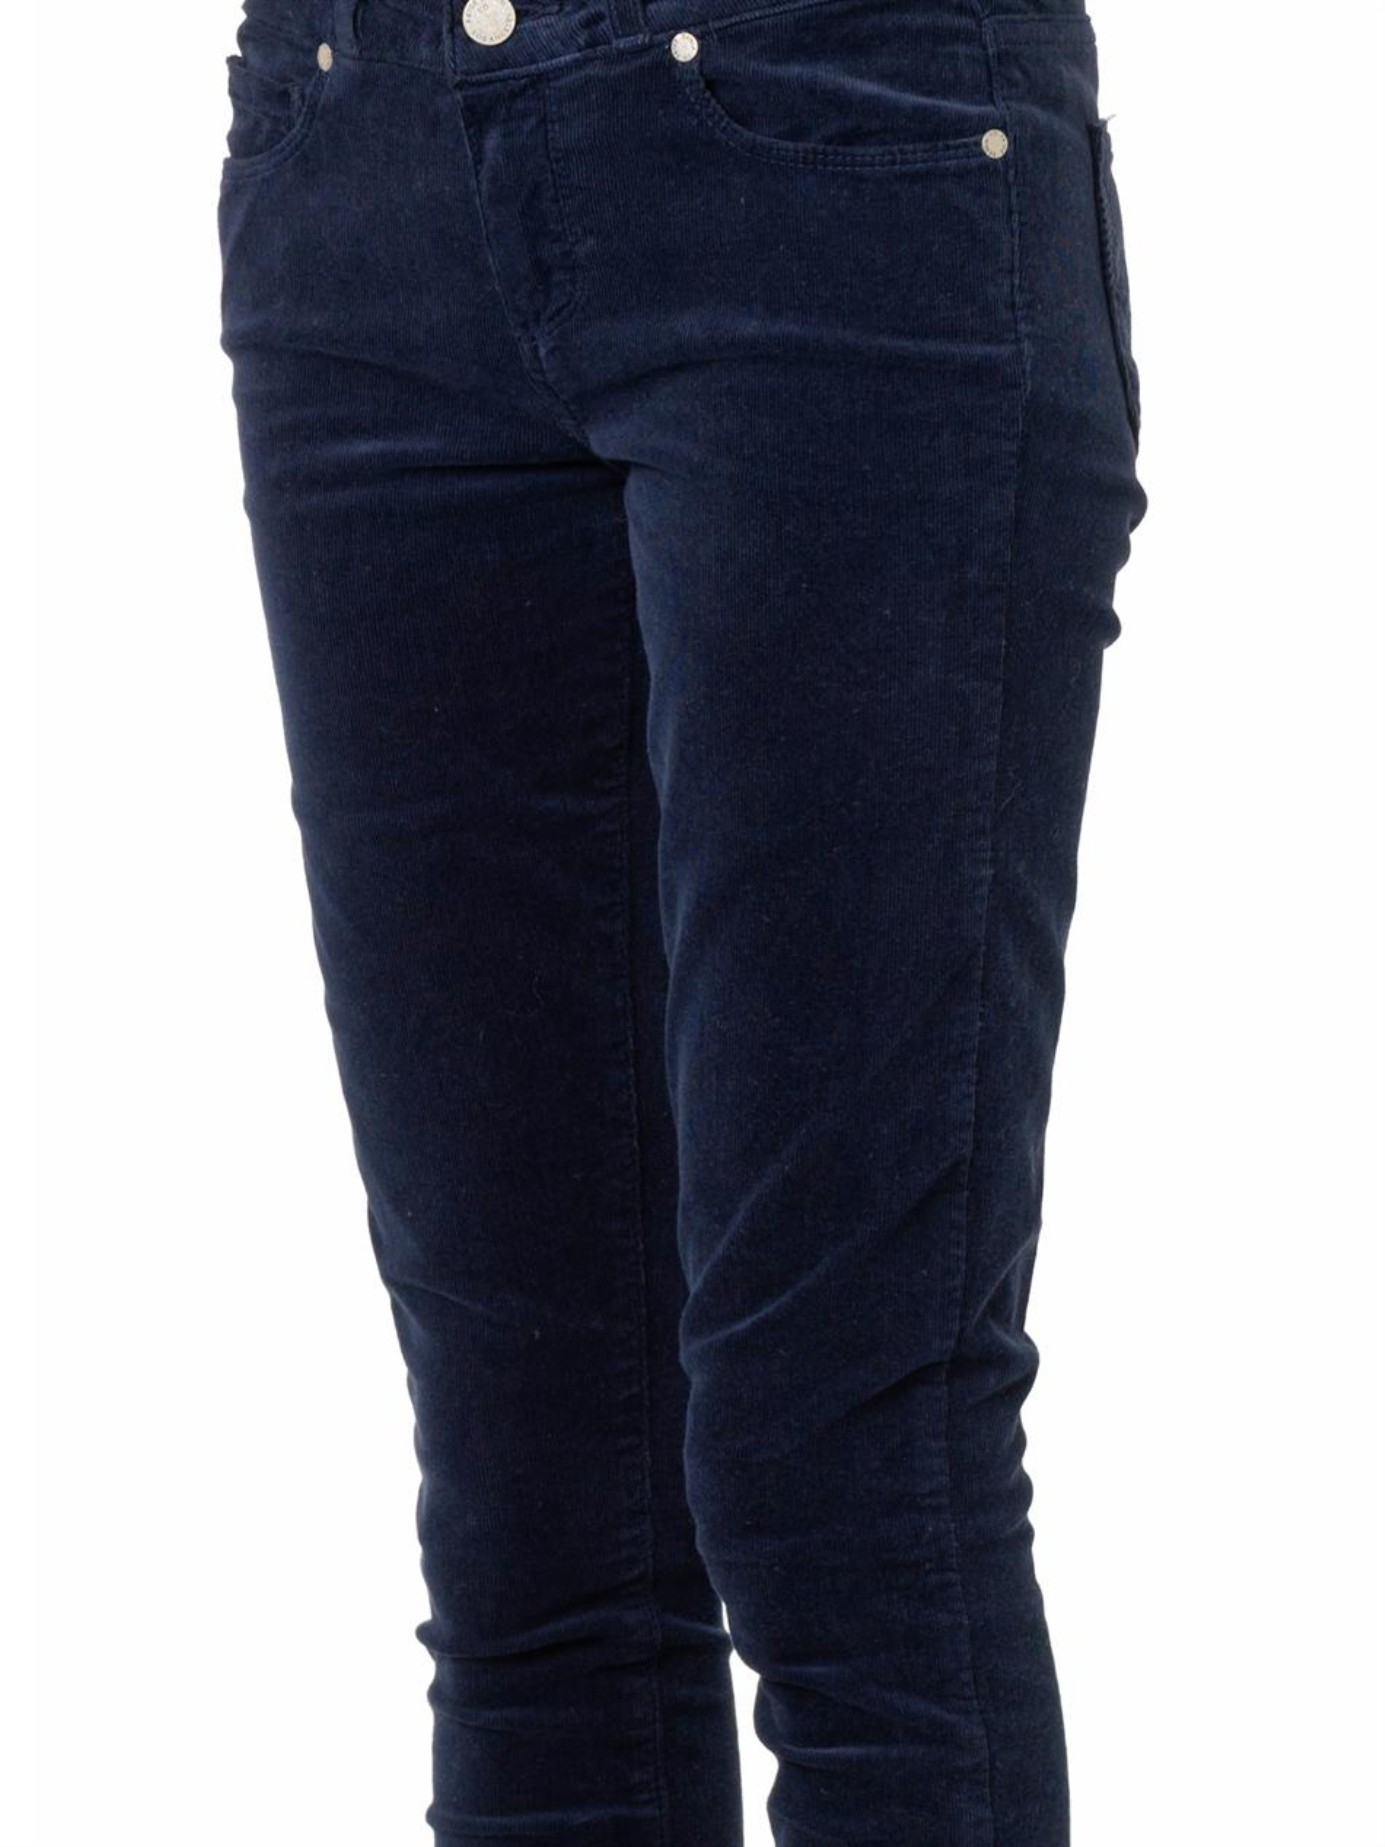 Navy cord skinny jeans